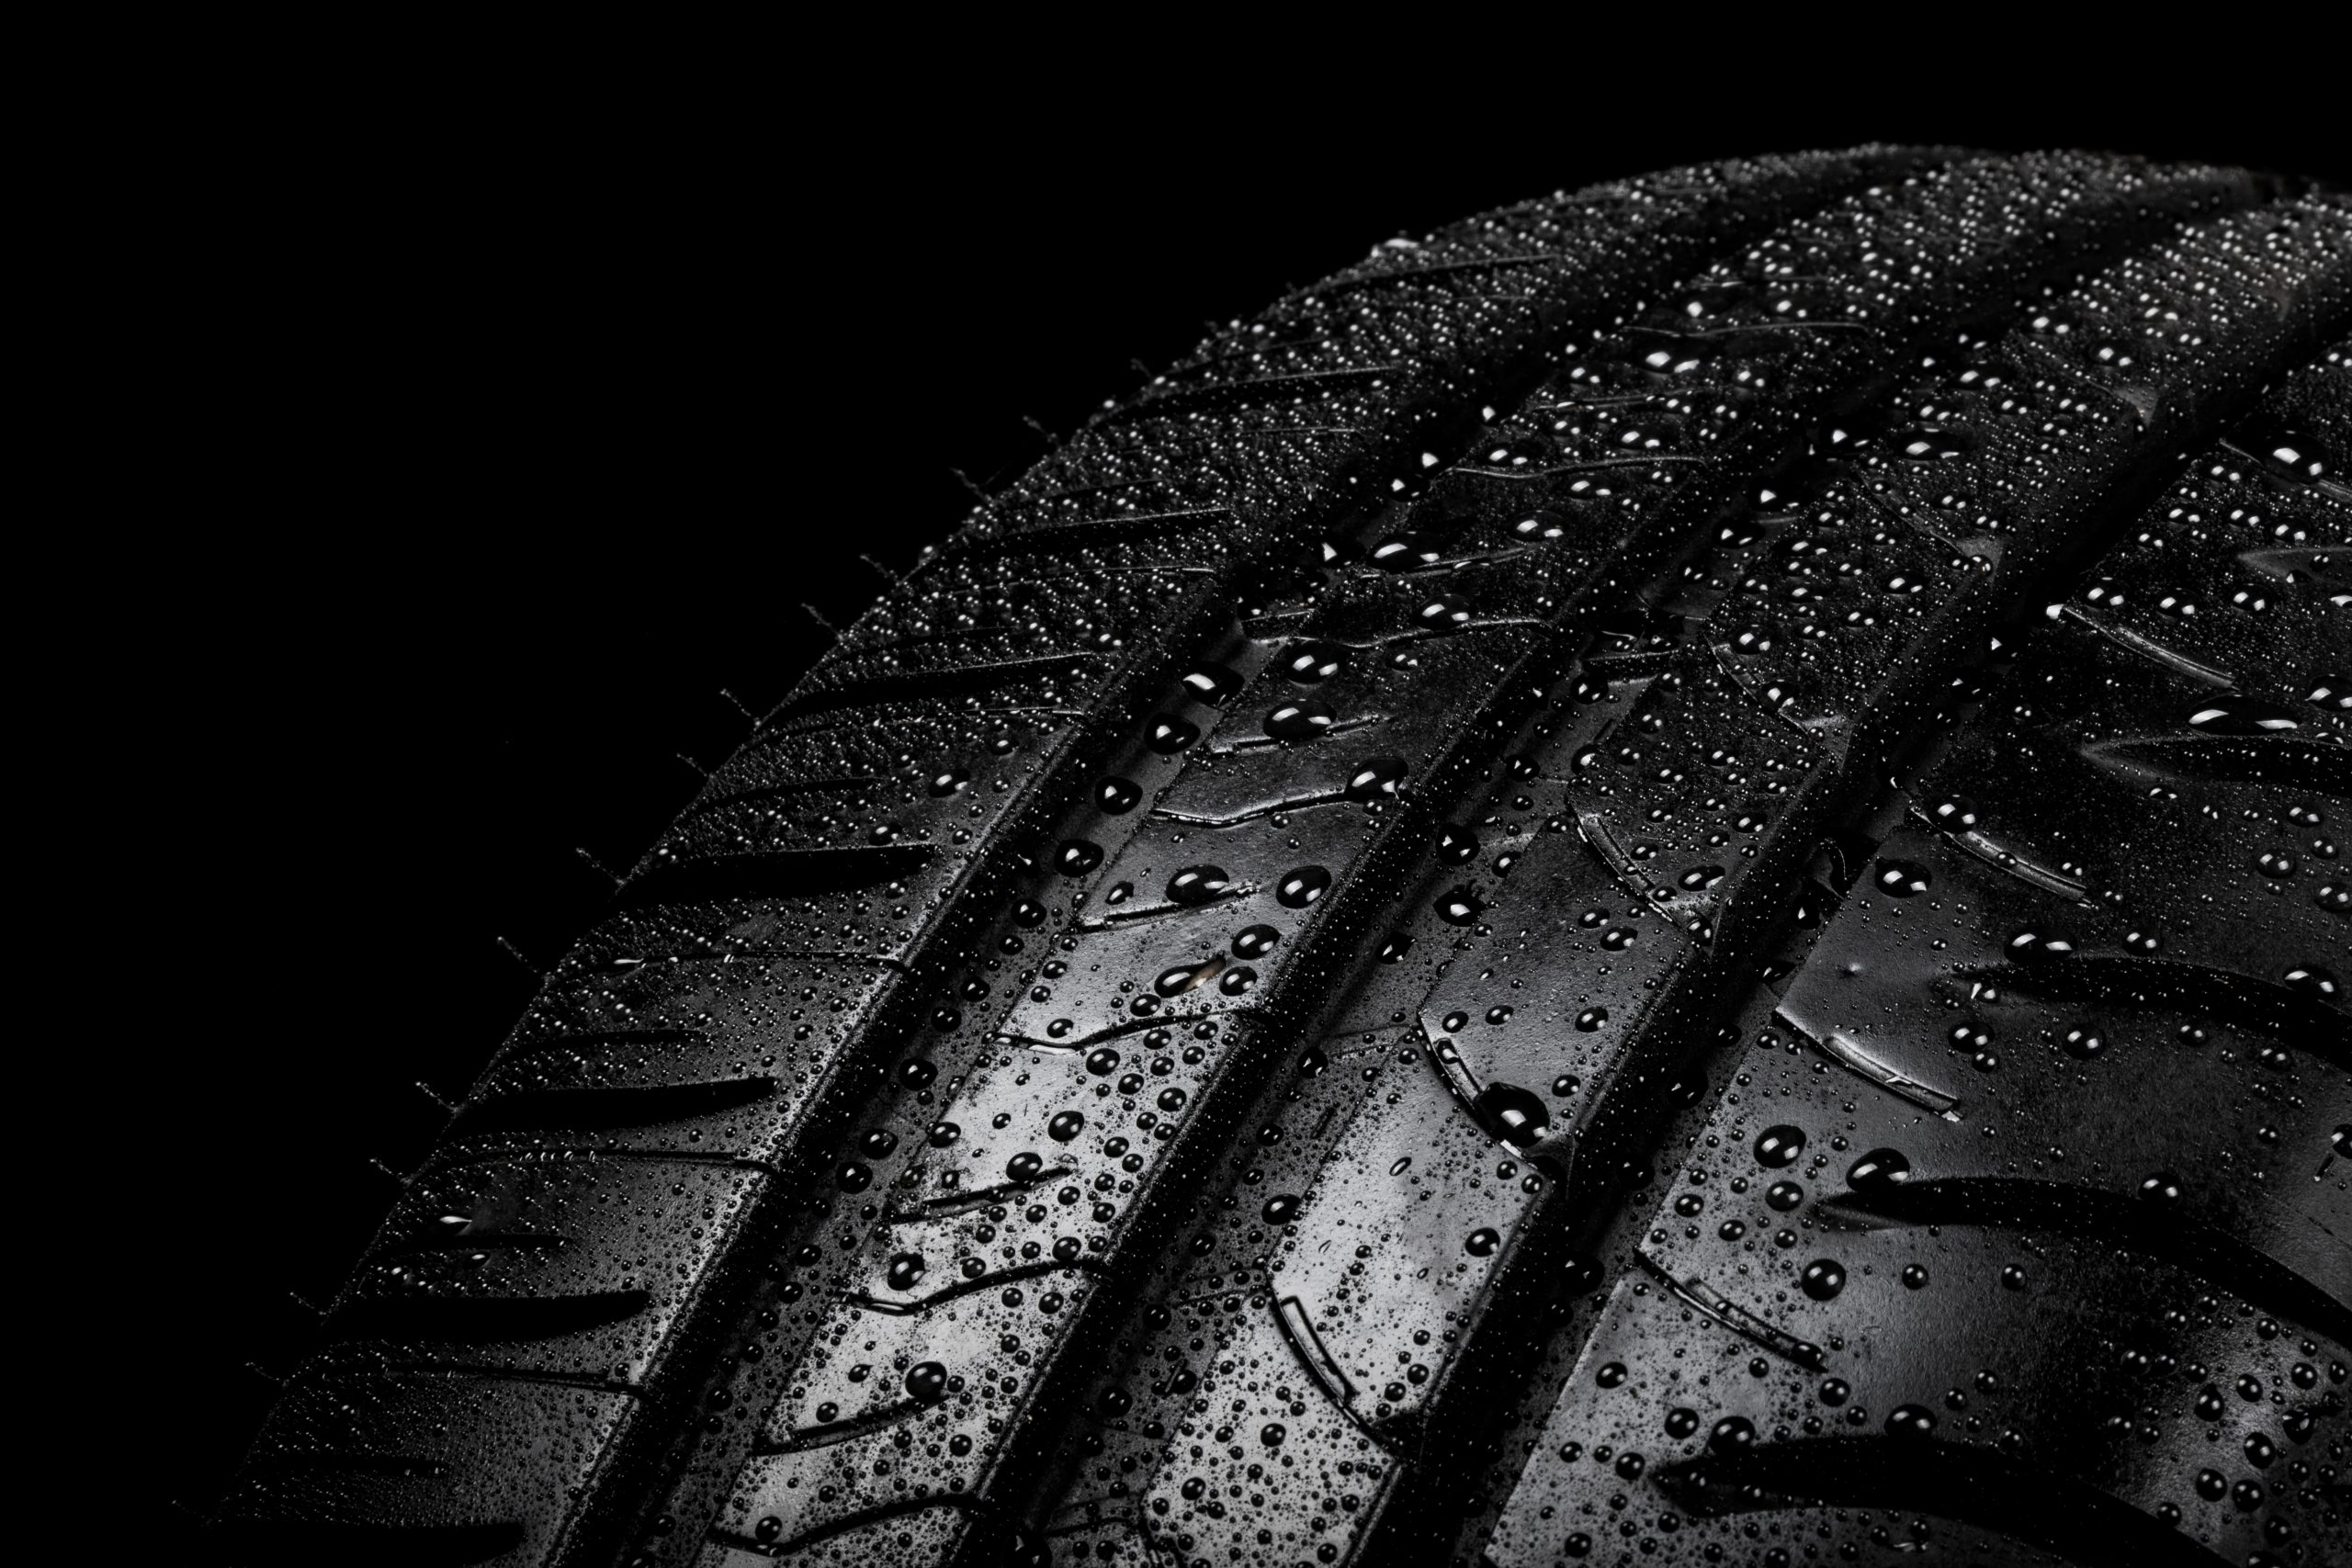 wet tire with threads